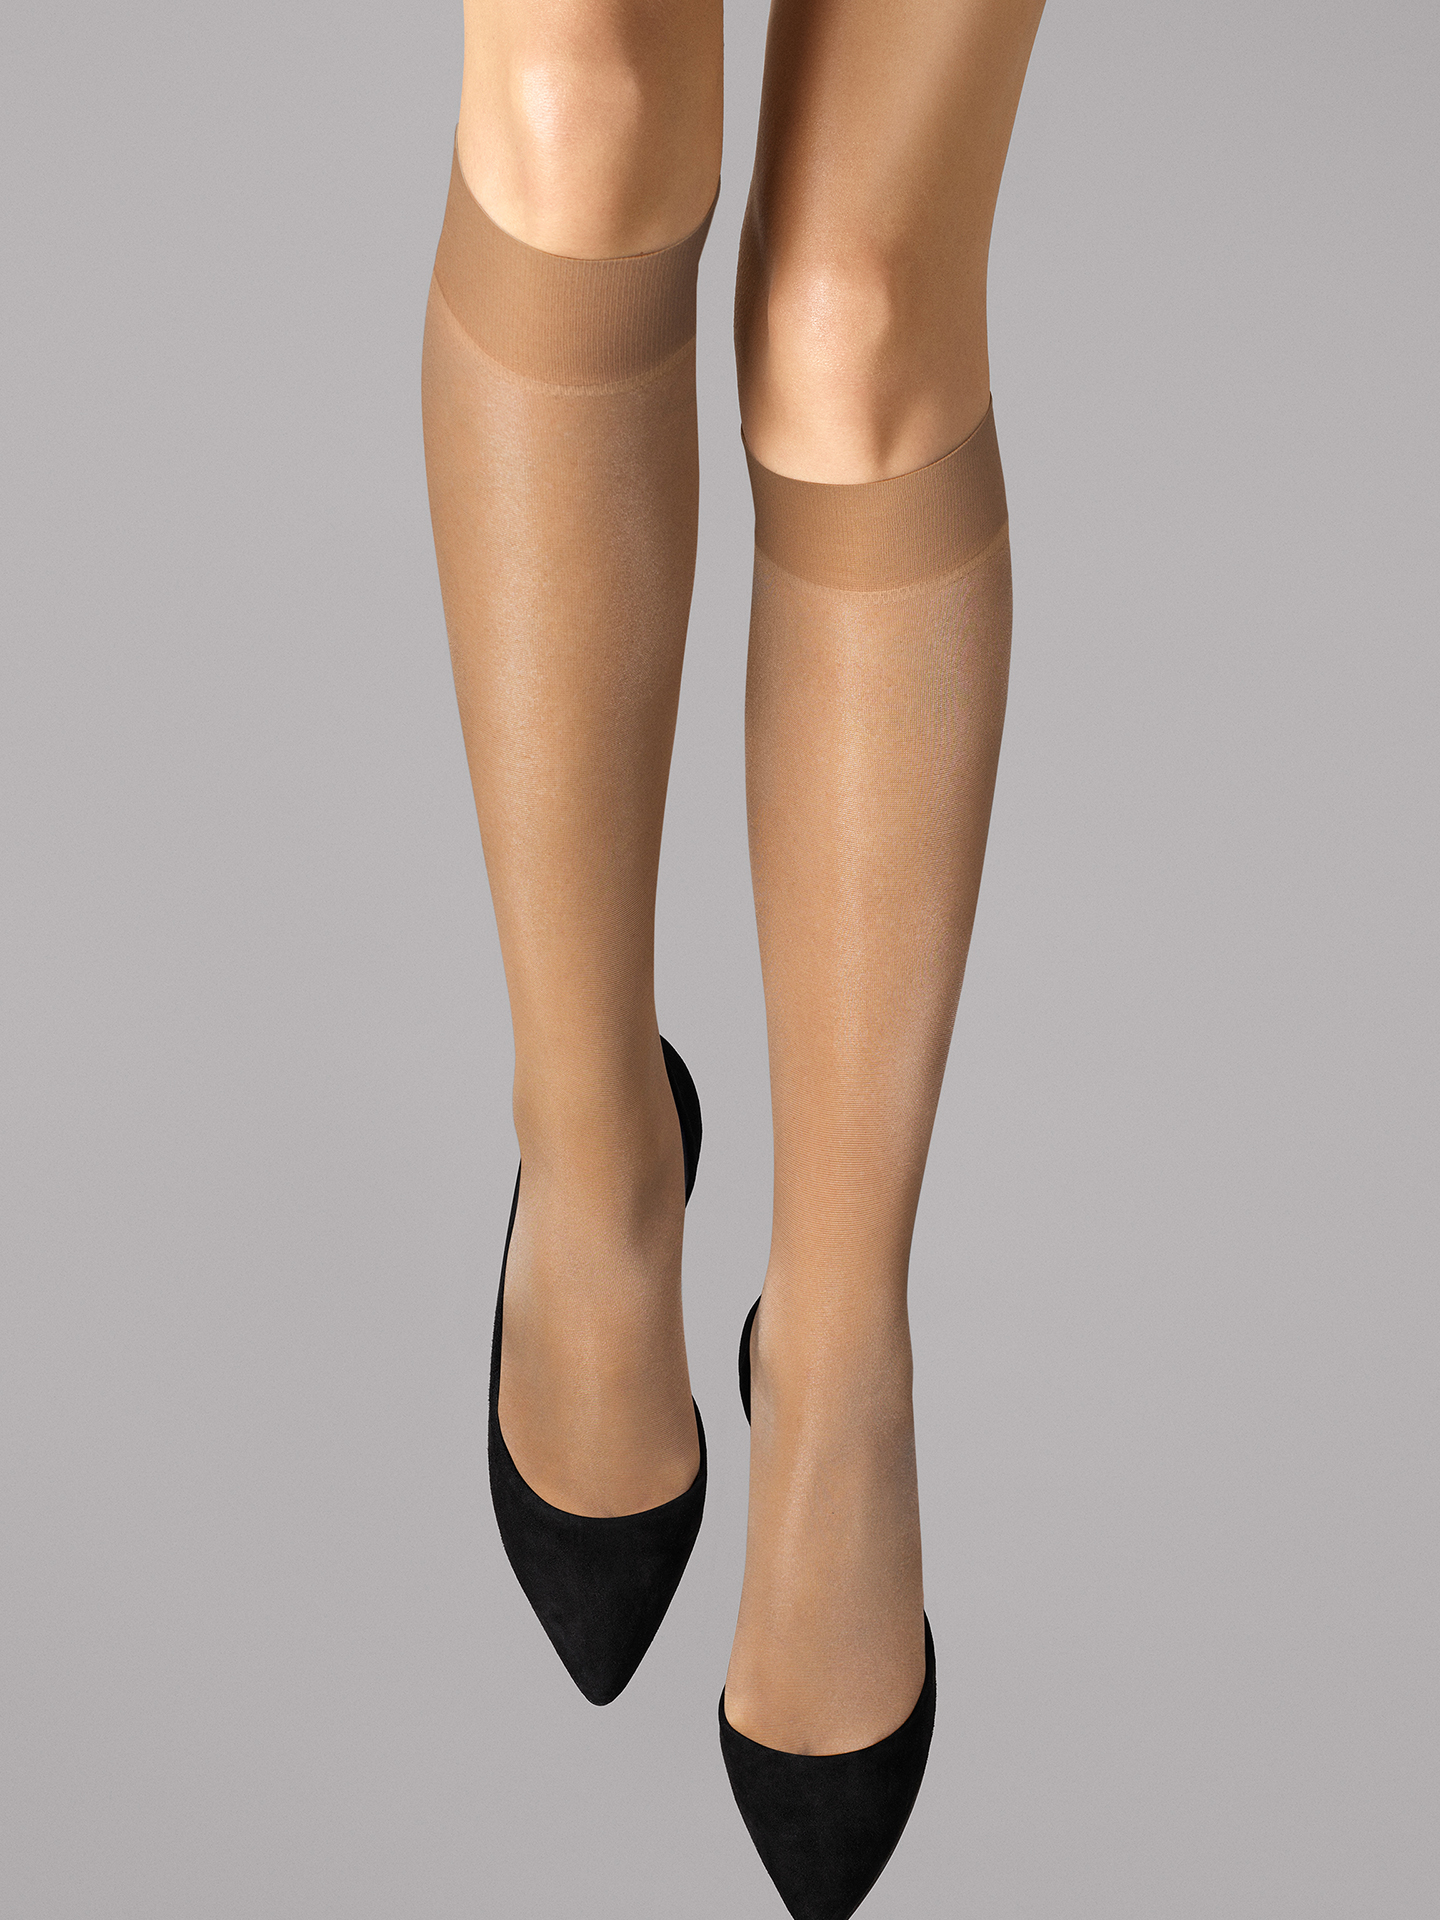 Wolford Apparel & Accessories > Clothing > Gambaletti Satin Touch 20 Knee-Highs - 4004 - S